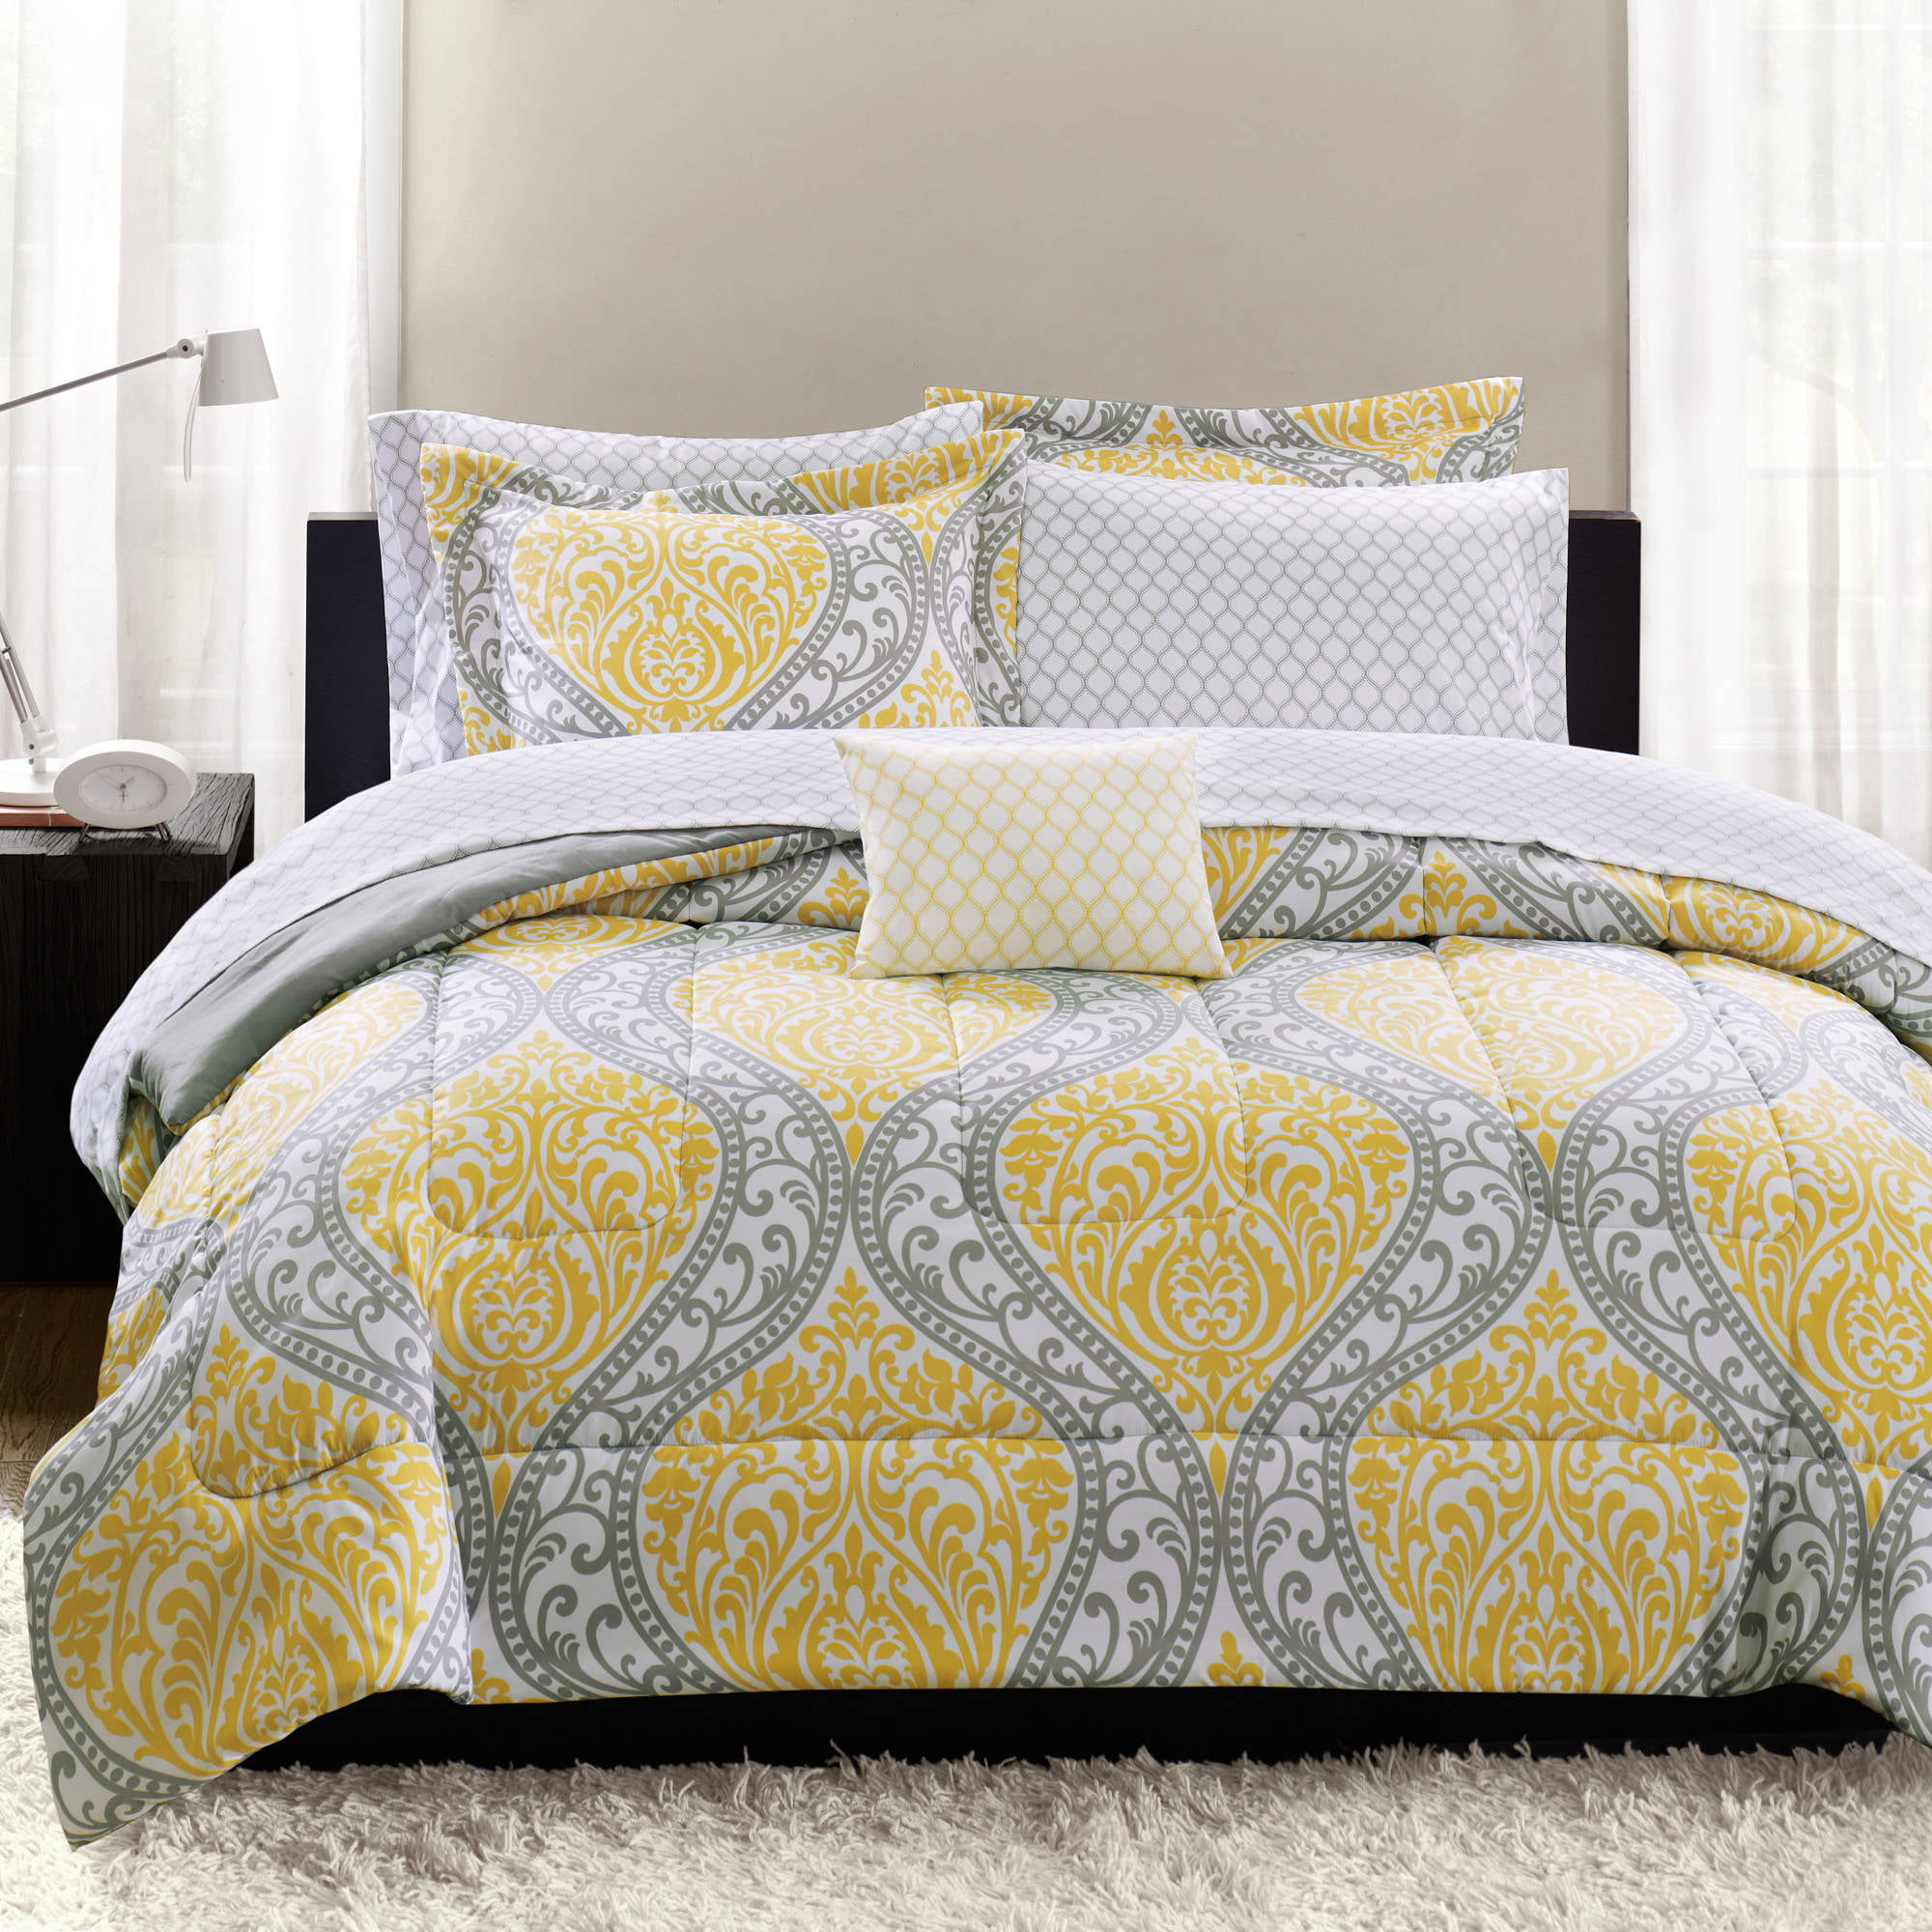 Bedding sets for teenage girls walmart - Bedding Sets For Teenage Girls Walmart 13